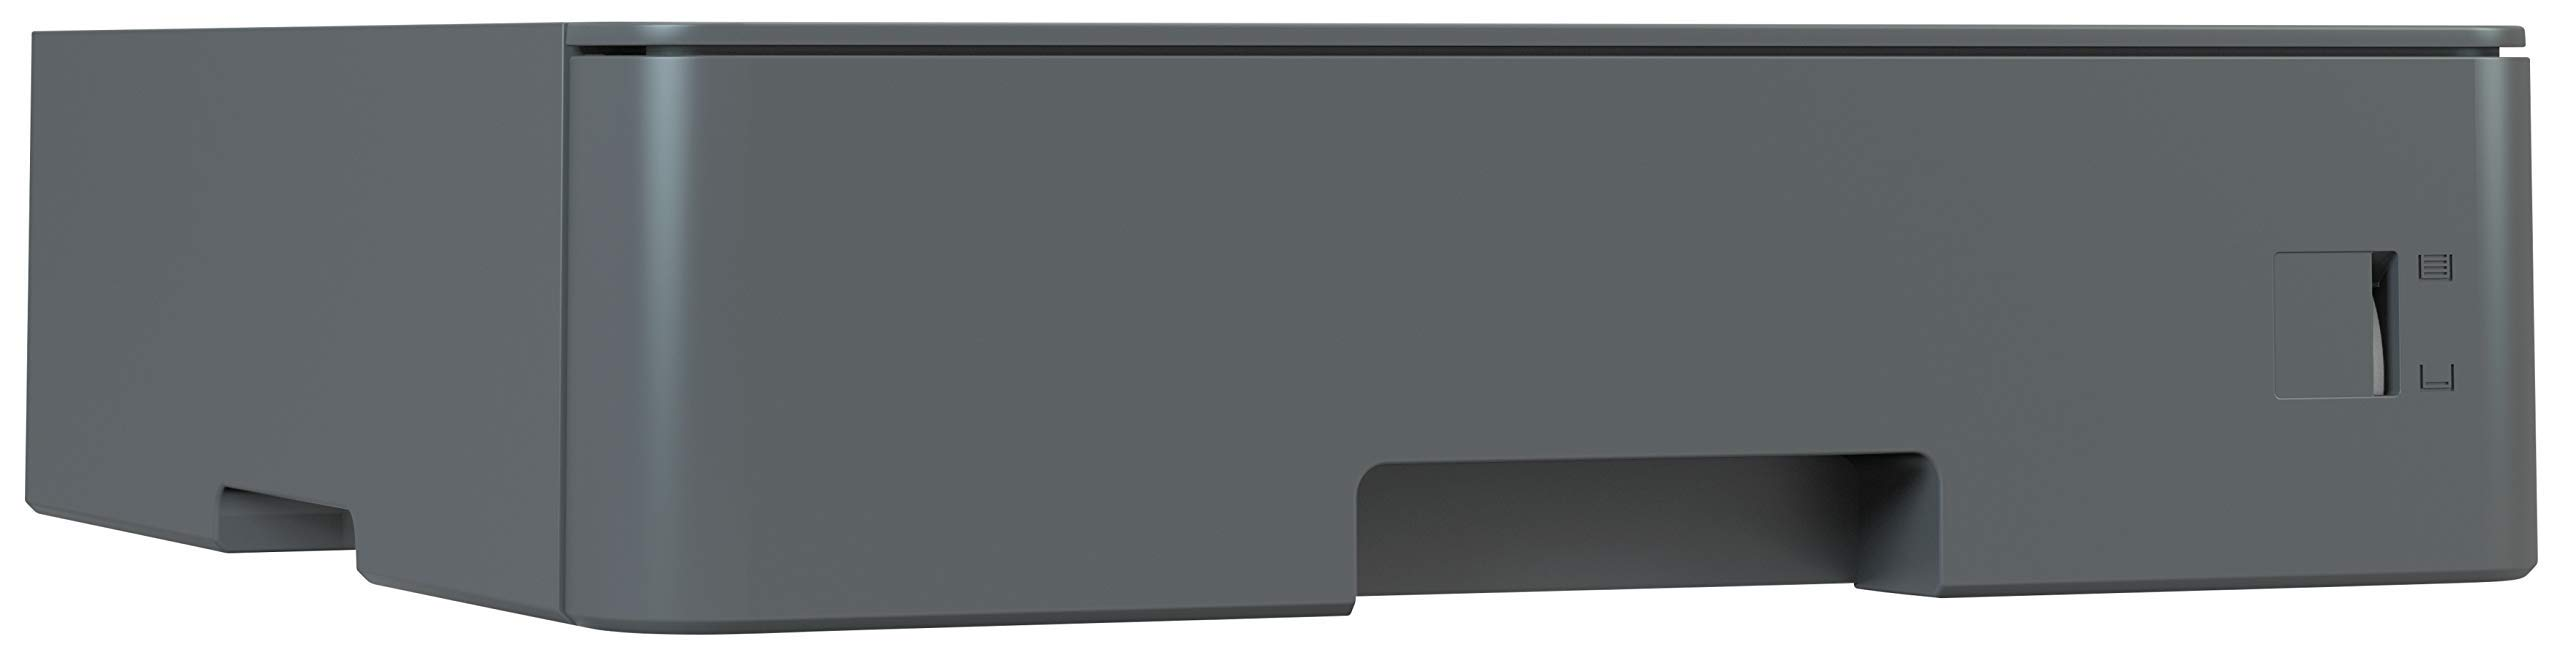 Brother Printer LT6500 Tray (Renewed) by Brother